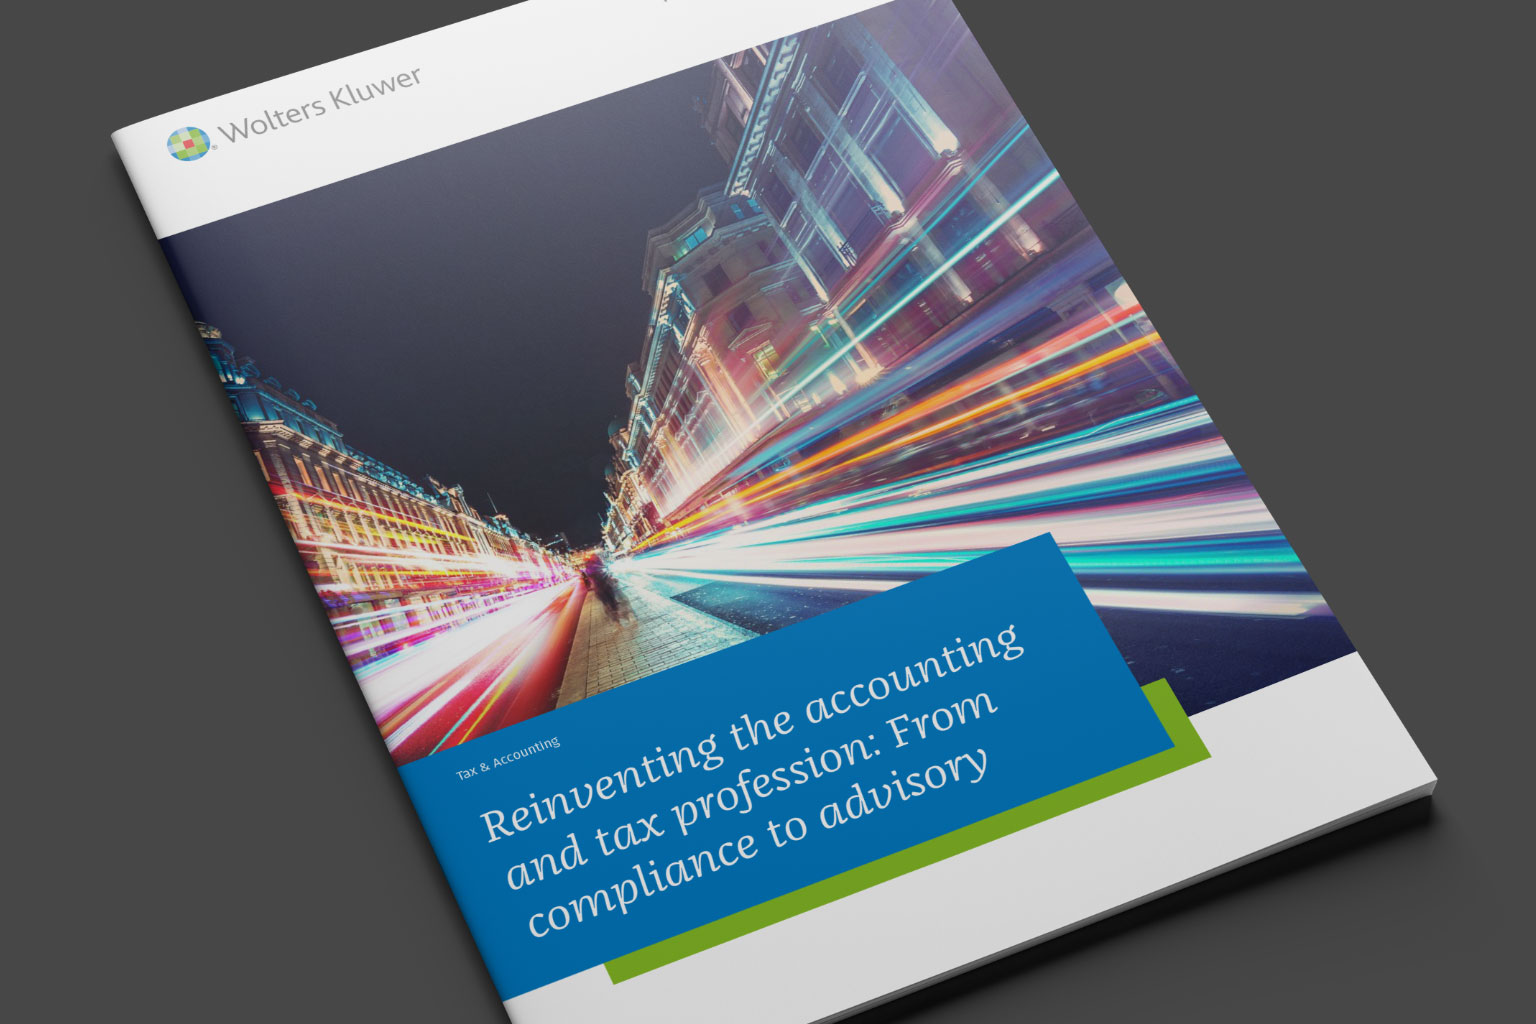 Whitepaper: Reinventing the industry from compliance to advisory